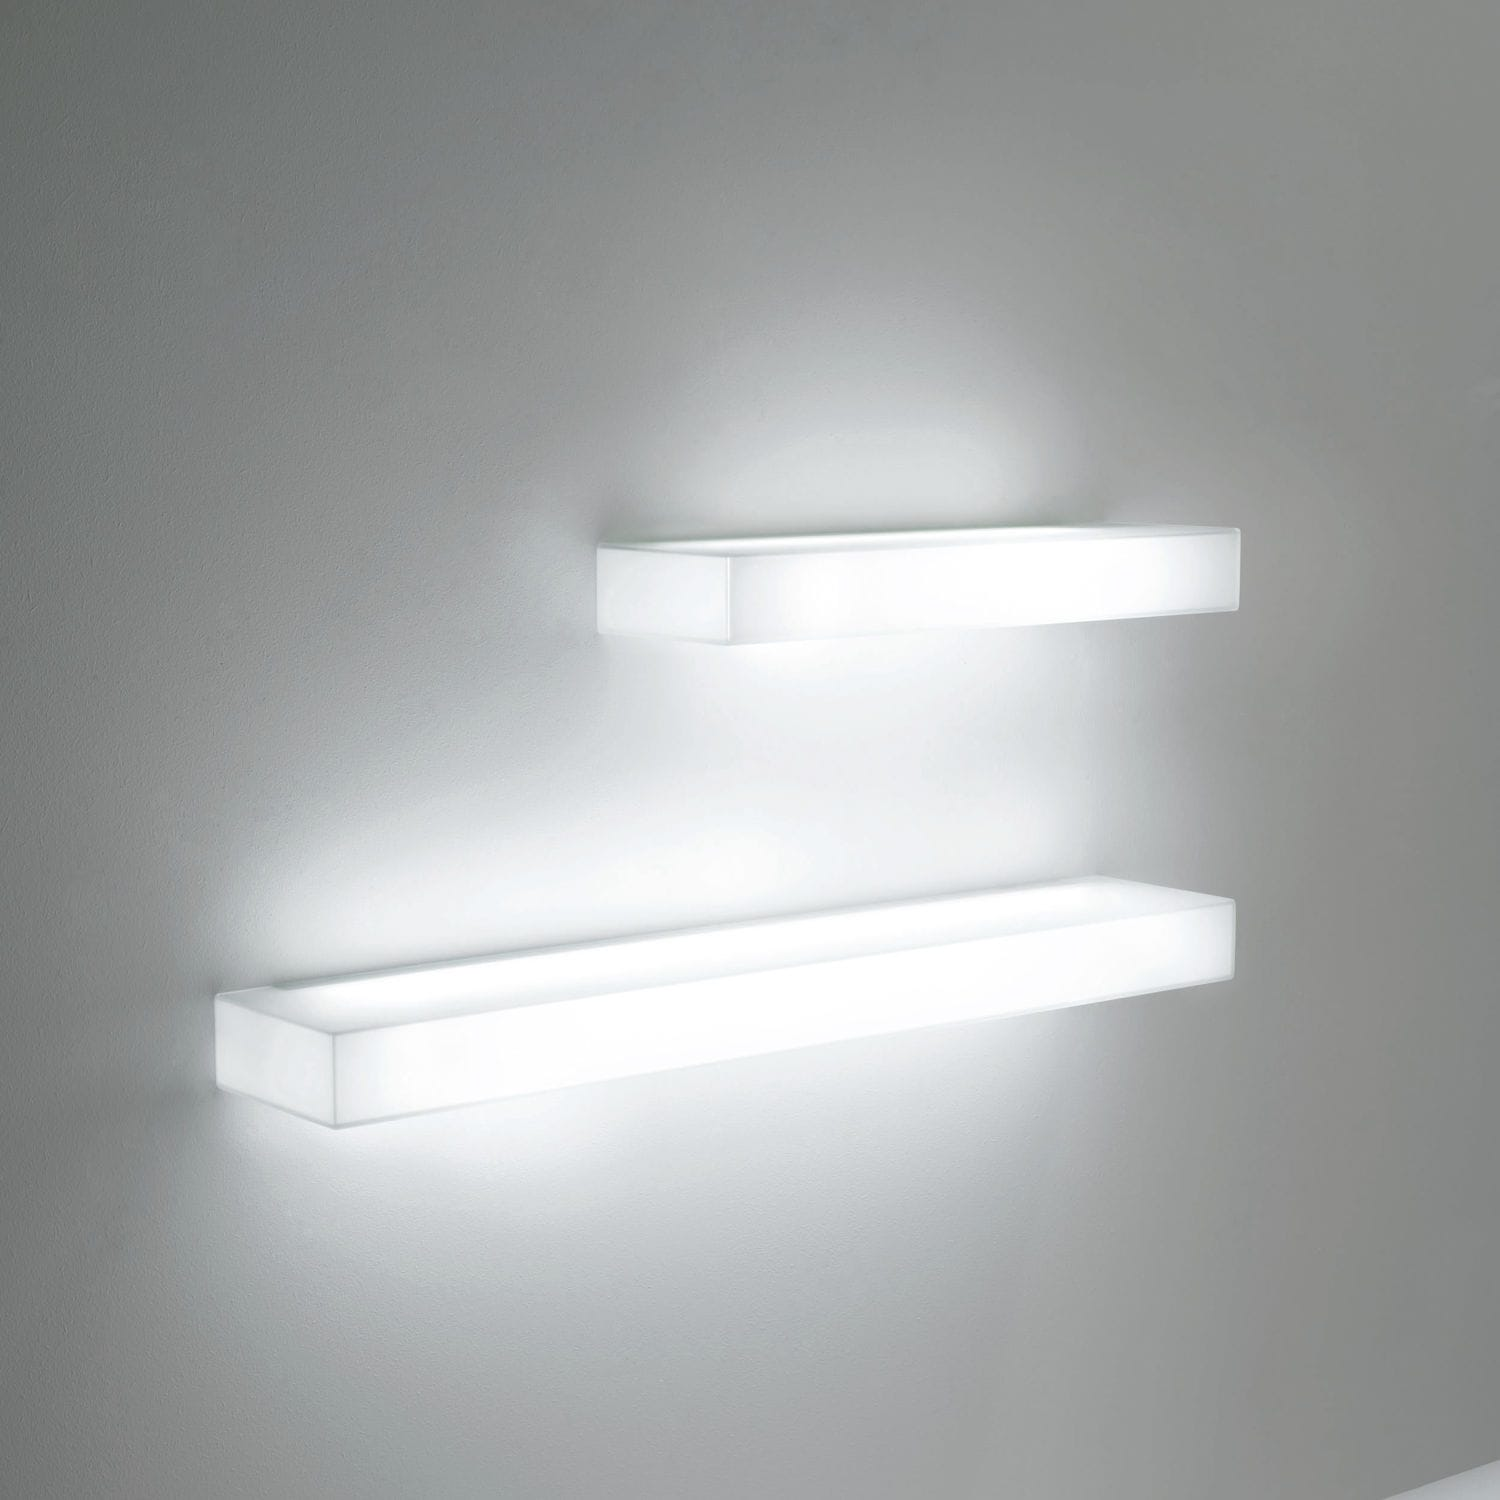 Wall mounted shelf contemporary glass illuminated light wall mounted shelf contemporary glass illuminated light light by nanda vigo amipublicfo Image collections